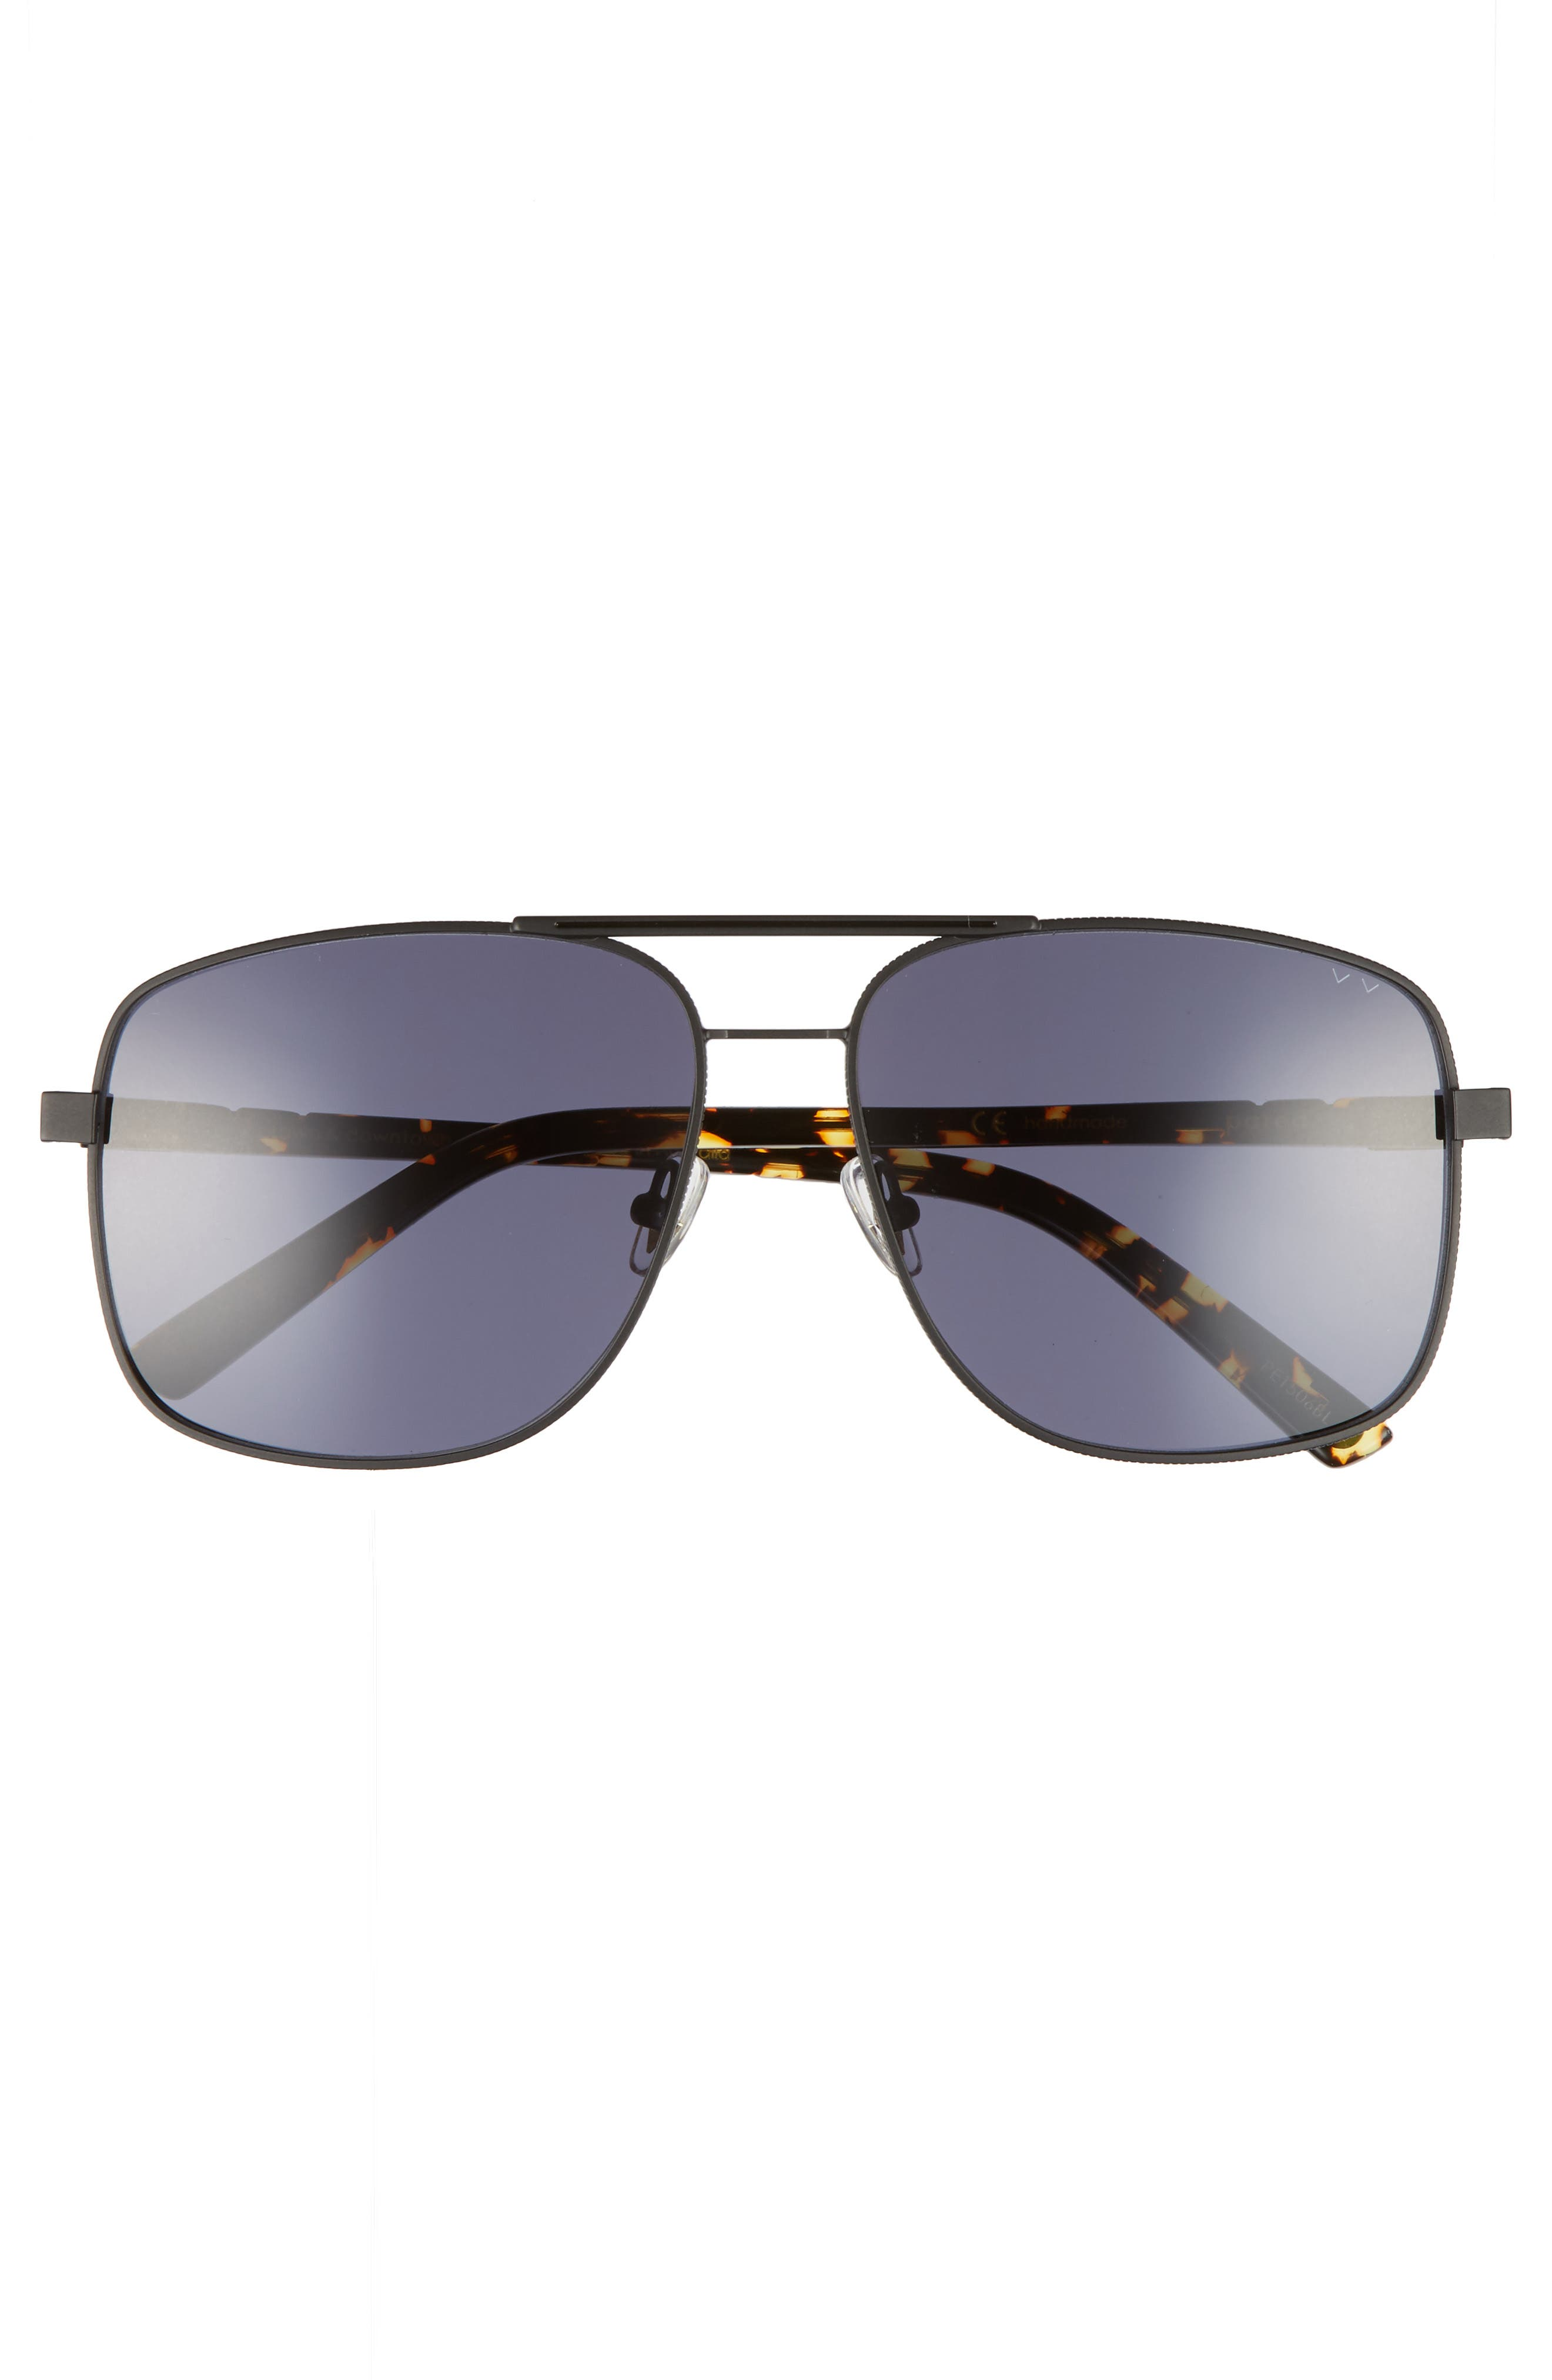 Uptown & Downtown 58mm Aviator Sunglasses,                             Alternate thumbnail 3, color,                             Matte Black Grey